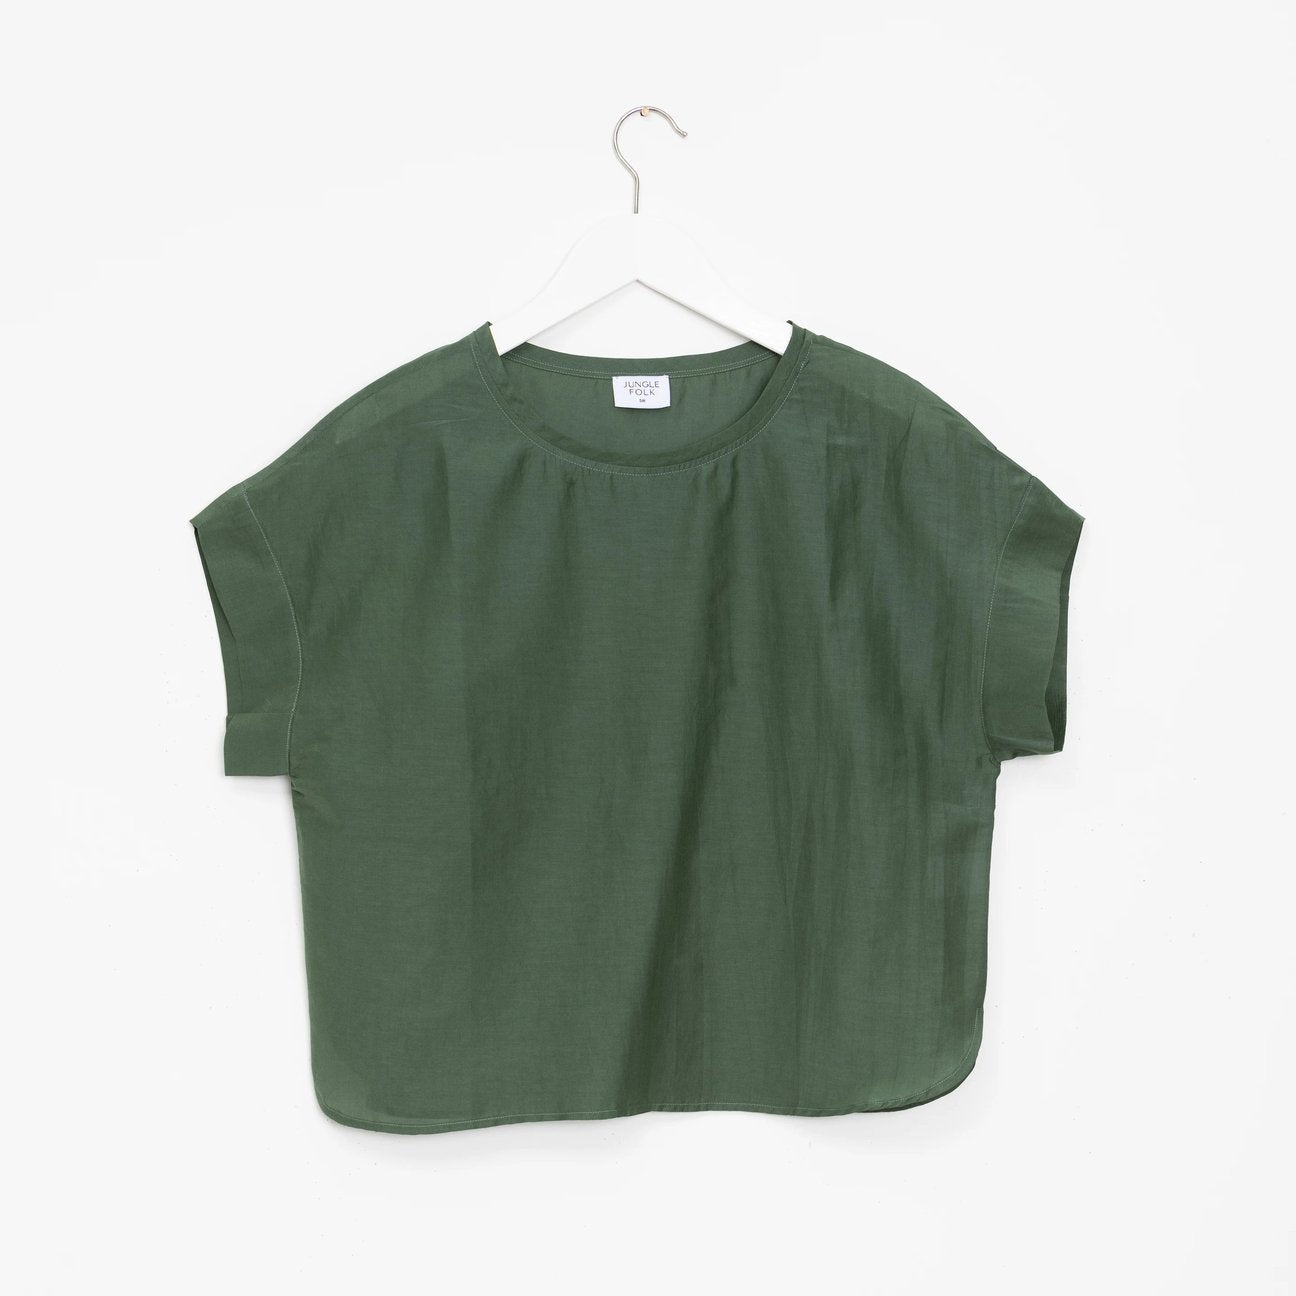 Bluse Emily pine green